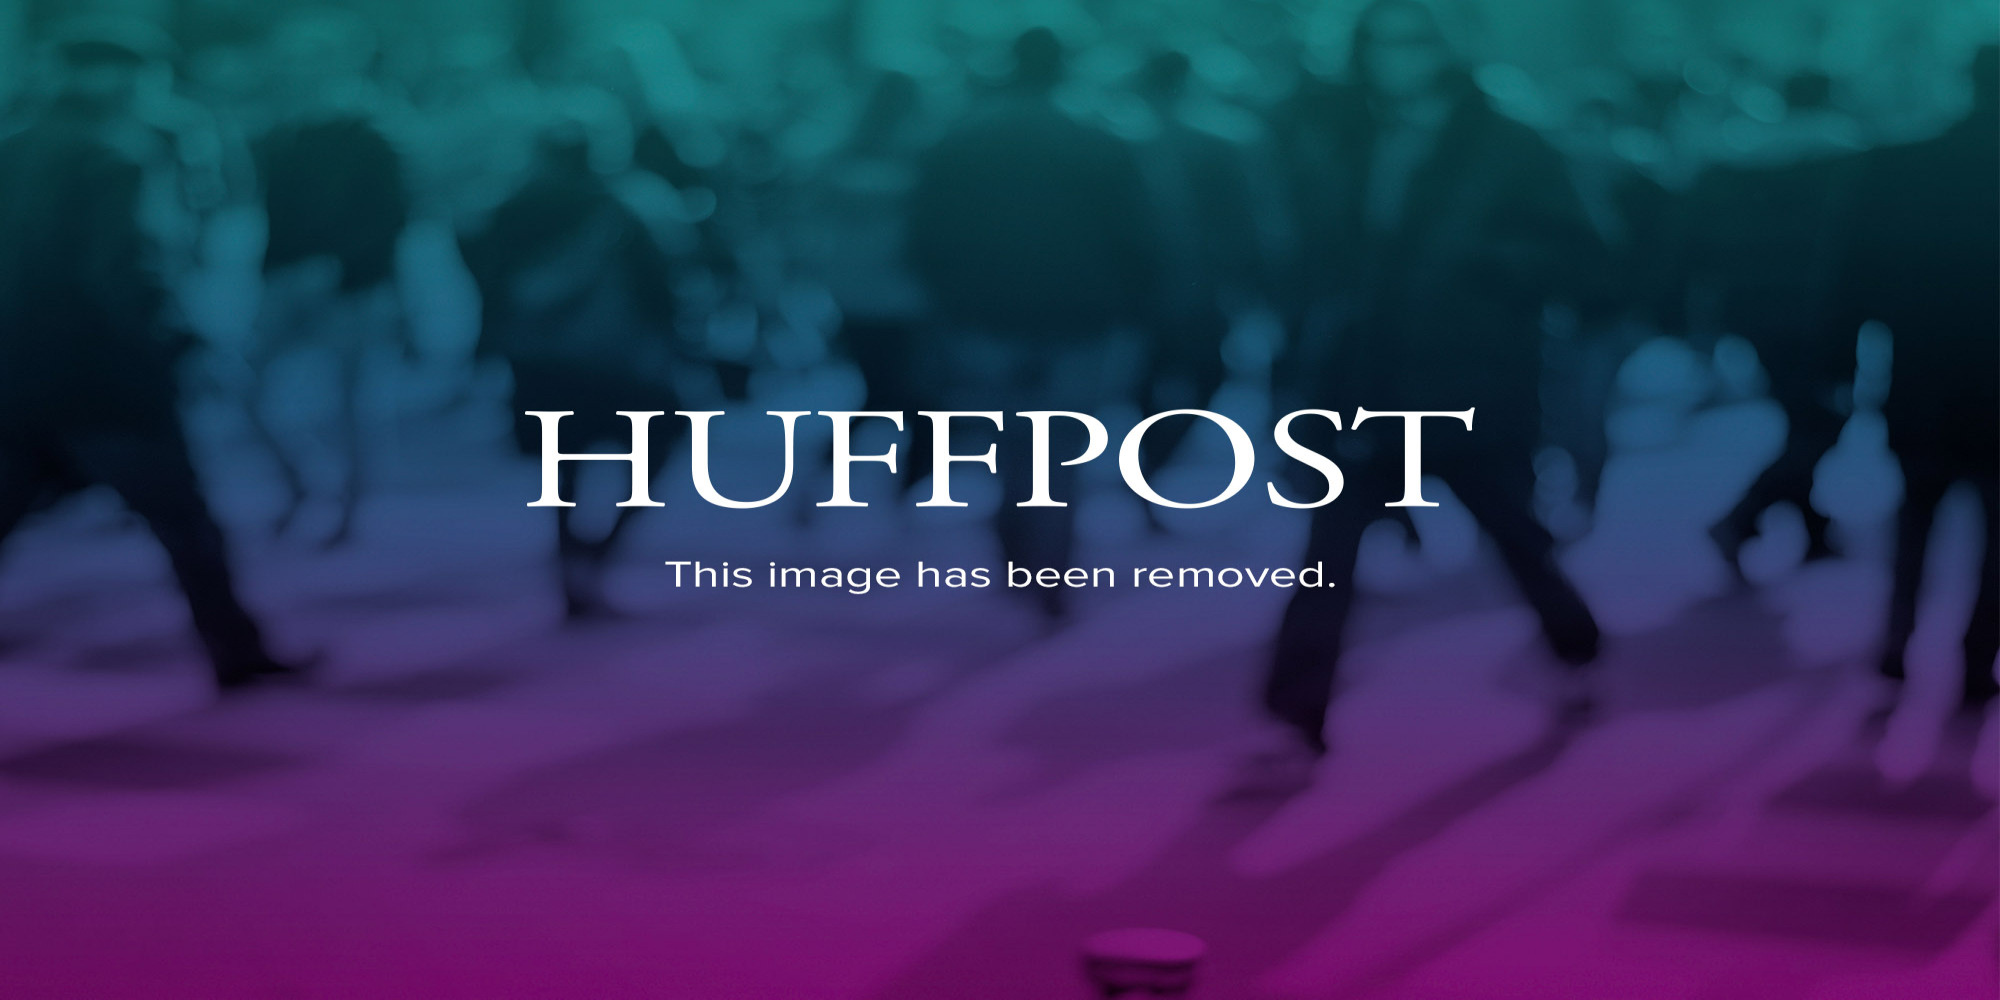 http://i.huffpost.com/gen/932549/thumbs/o-BEST-ANIMATED-FEATURE-FILM-facebook.jpg